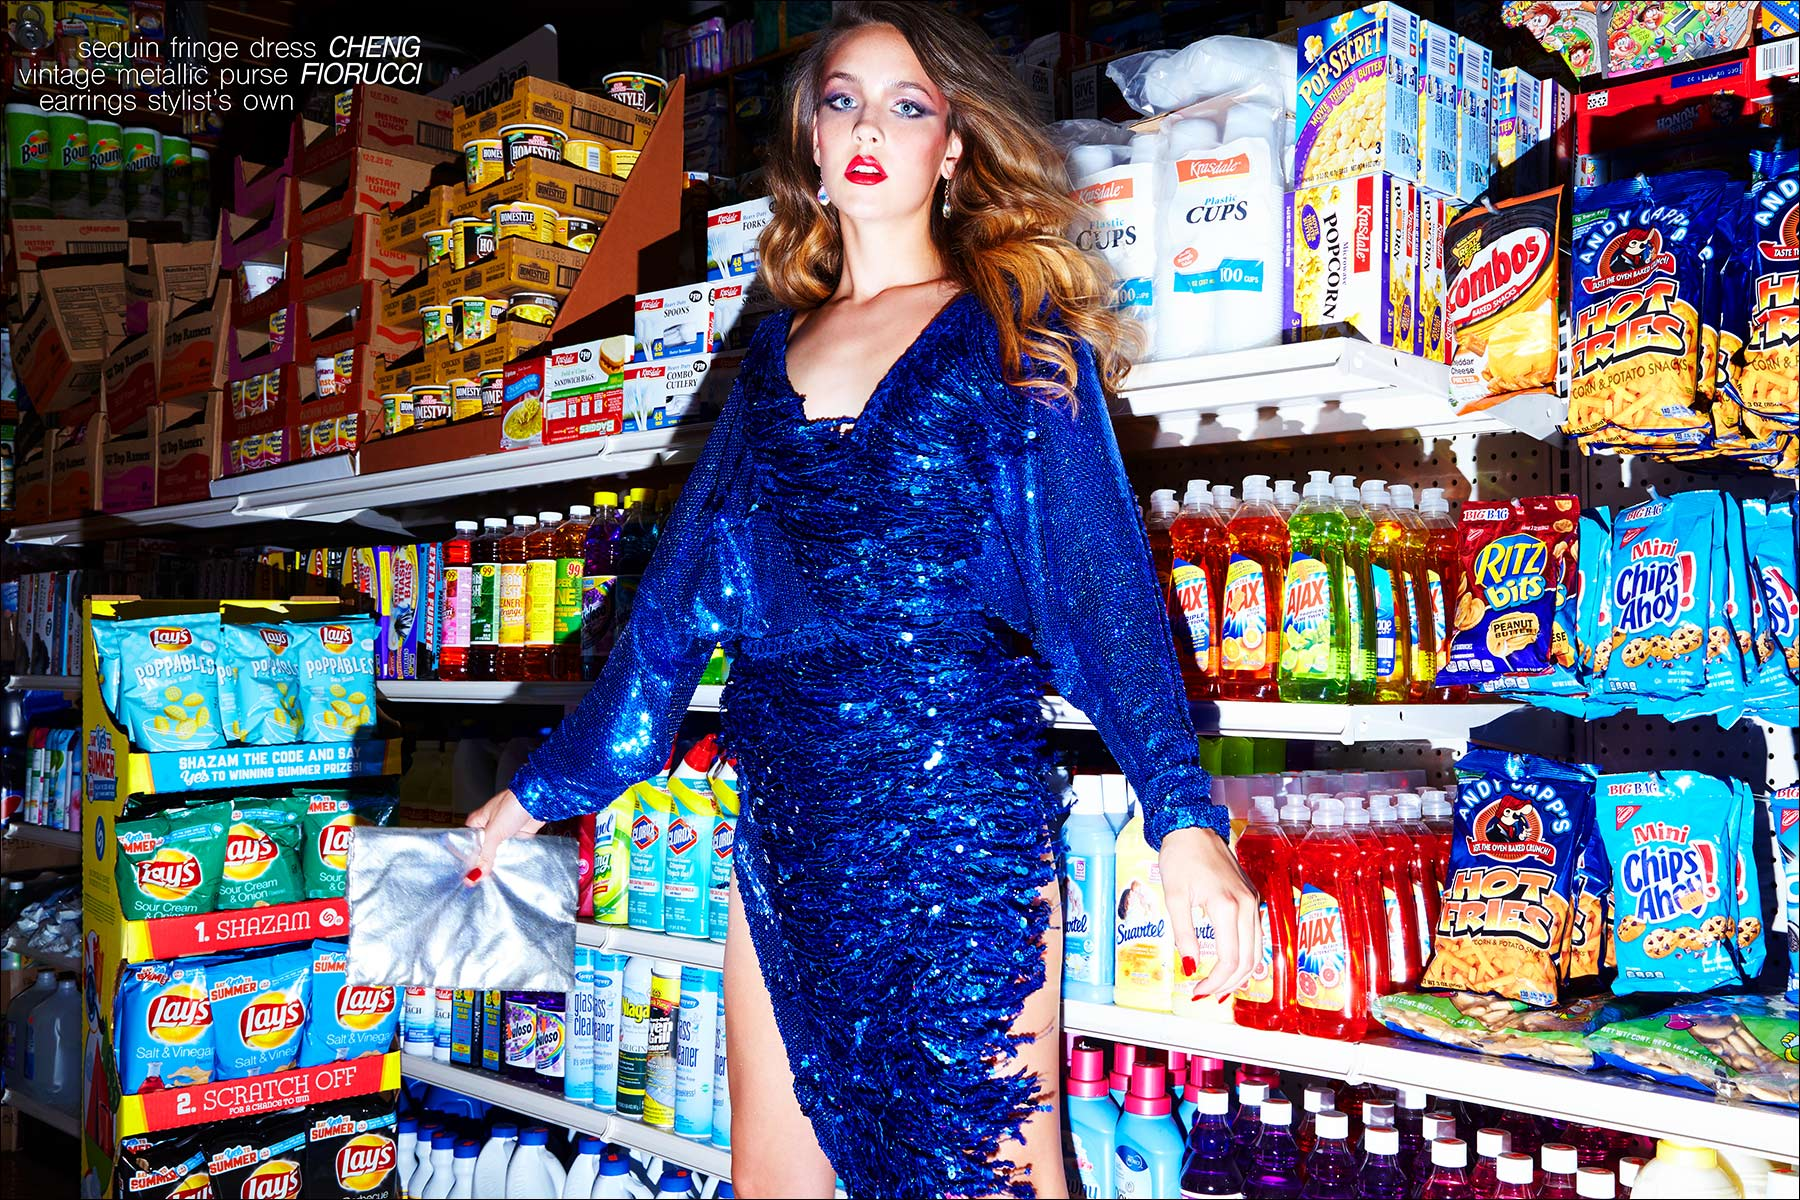 Izzy Pawline wears a sequined blue dress by Cheng, for Ponyboy magazine NY. Photographed by Alexander Thompson.